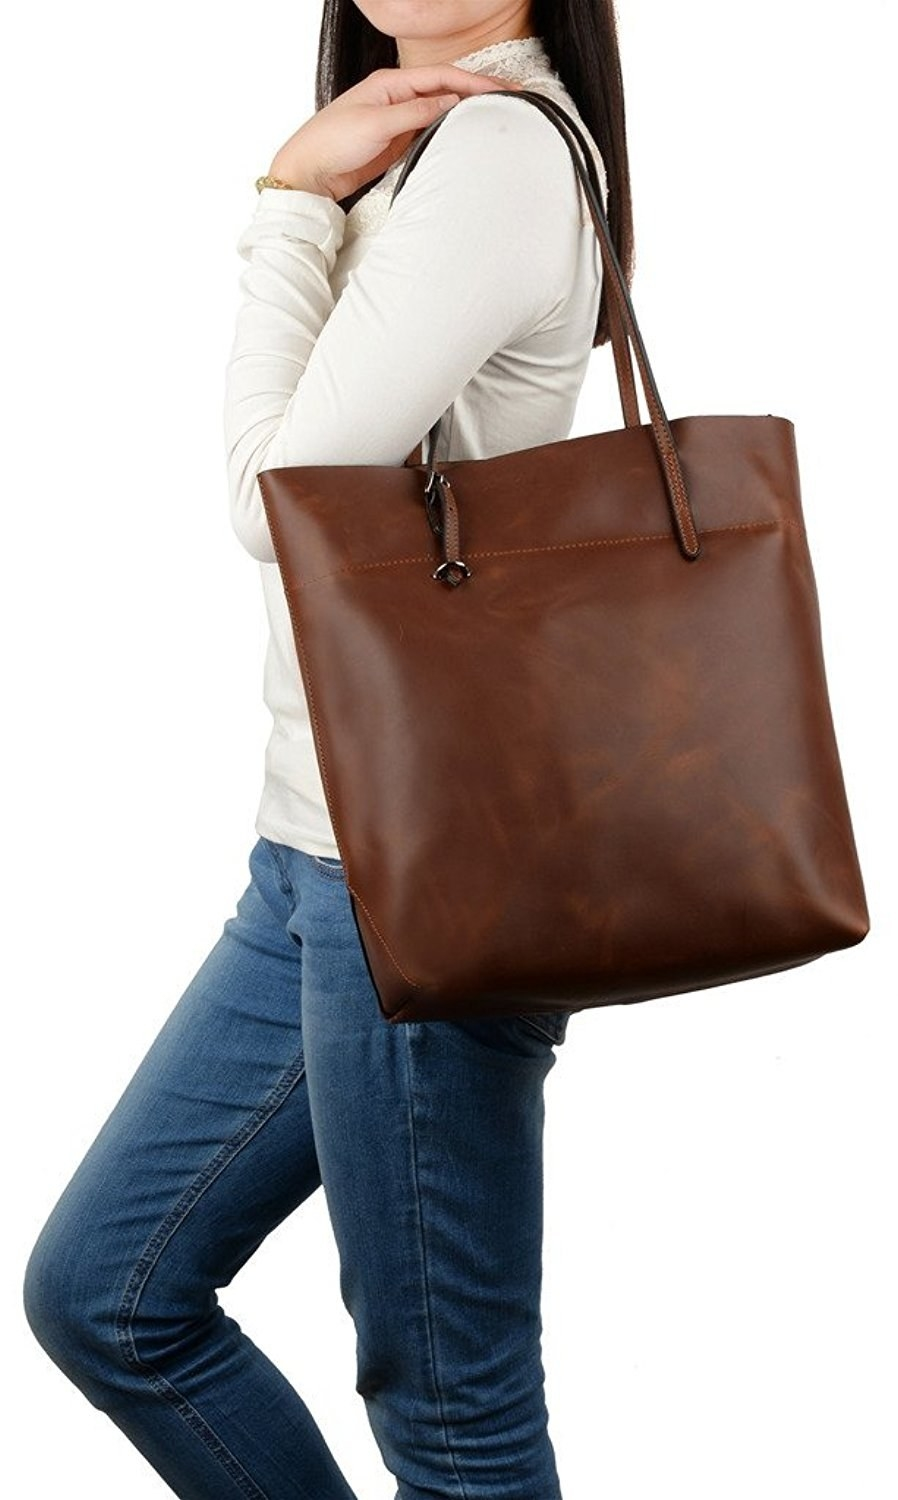 A roomy tote with a distressed finish that ll fit your laptop and notebooks  while keeping its shape. 76b59cc187cb1